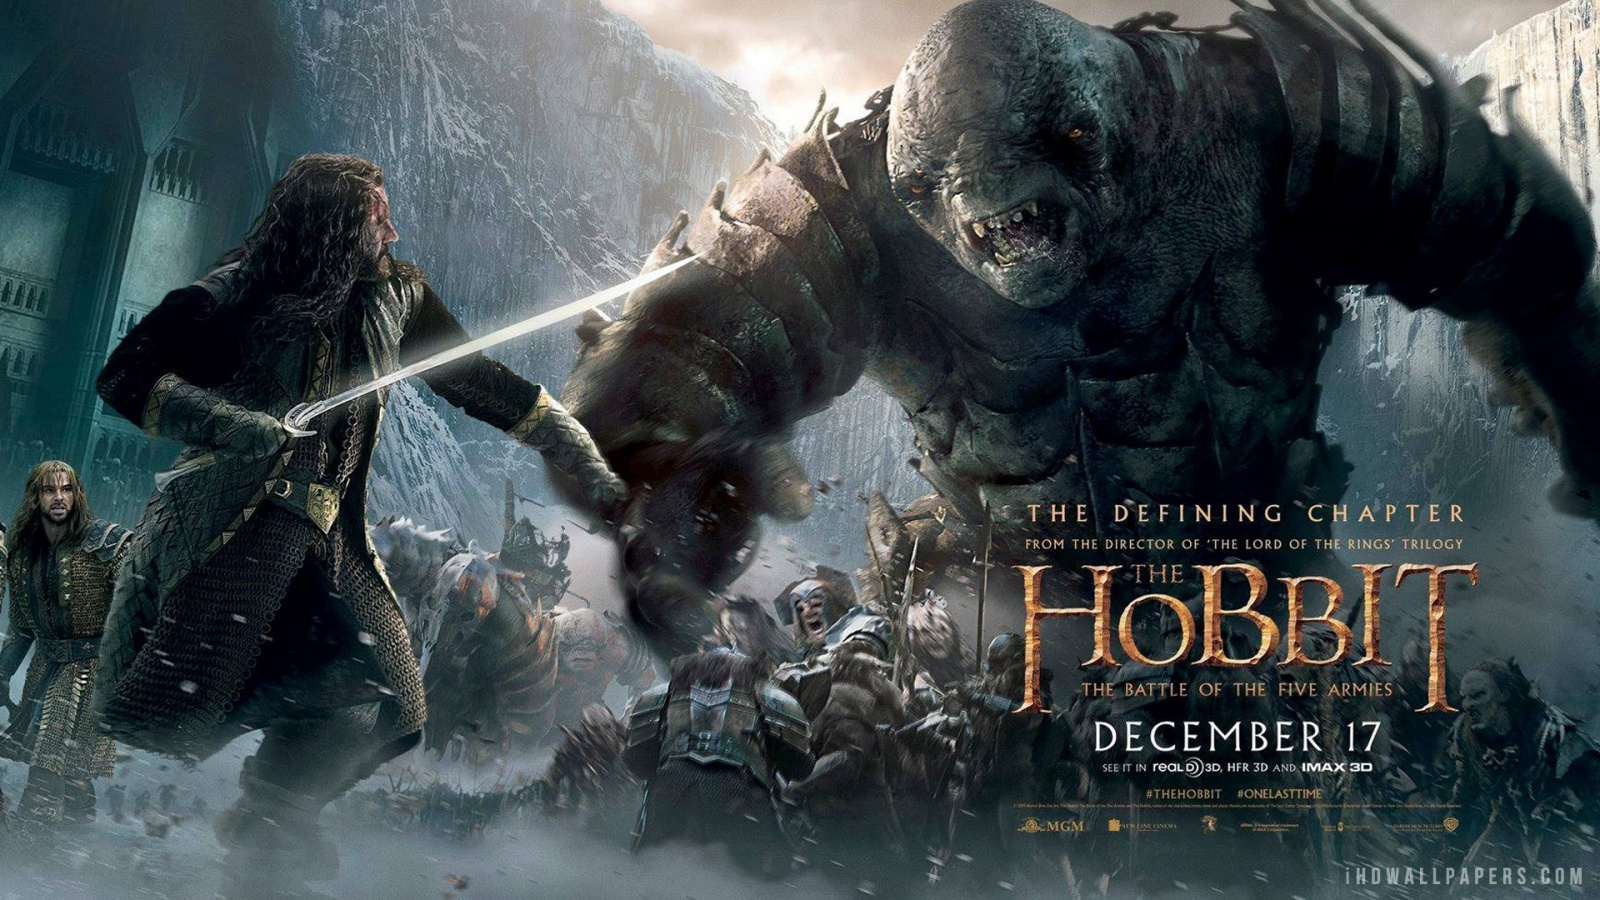 The Hobbit The Battle of the Five Armies Poster HD Wallpaper   iHD 1600x900